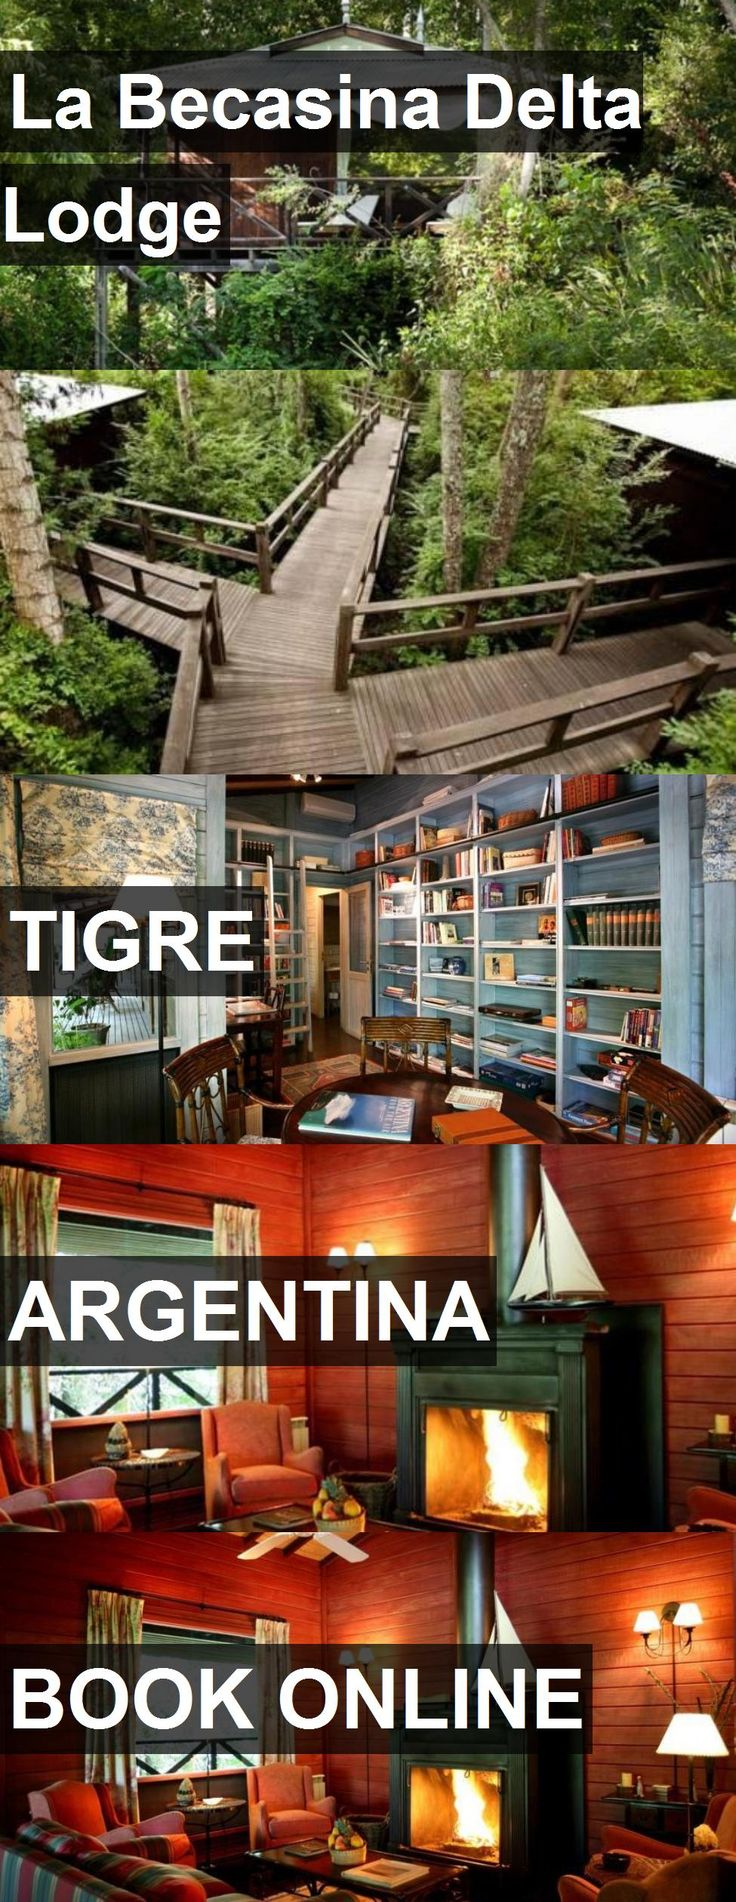 Hotel La Becasina Delta Lodge in Tigre, Argentina. For more information, photos, reviews and best prices please follow the link. #Argentina #Tigre #hotel #travel #vacation